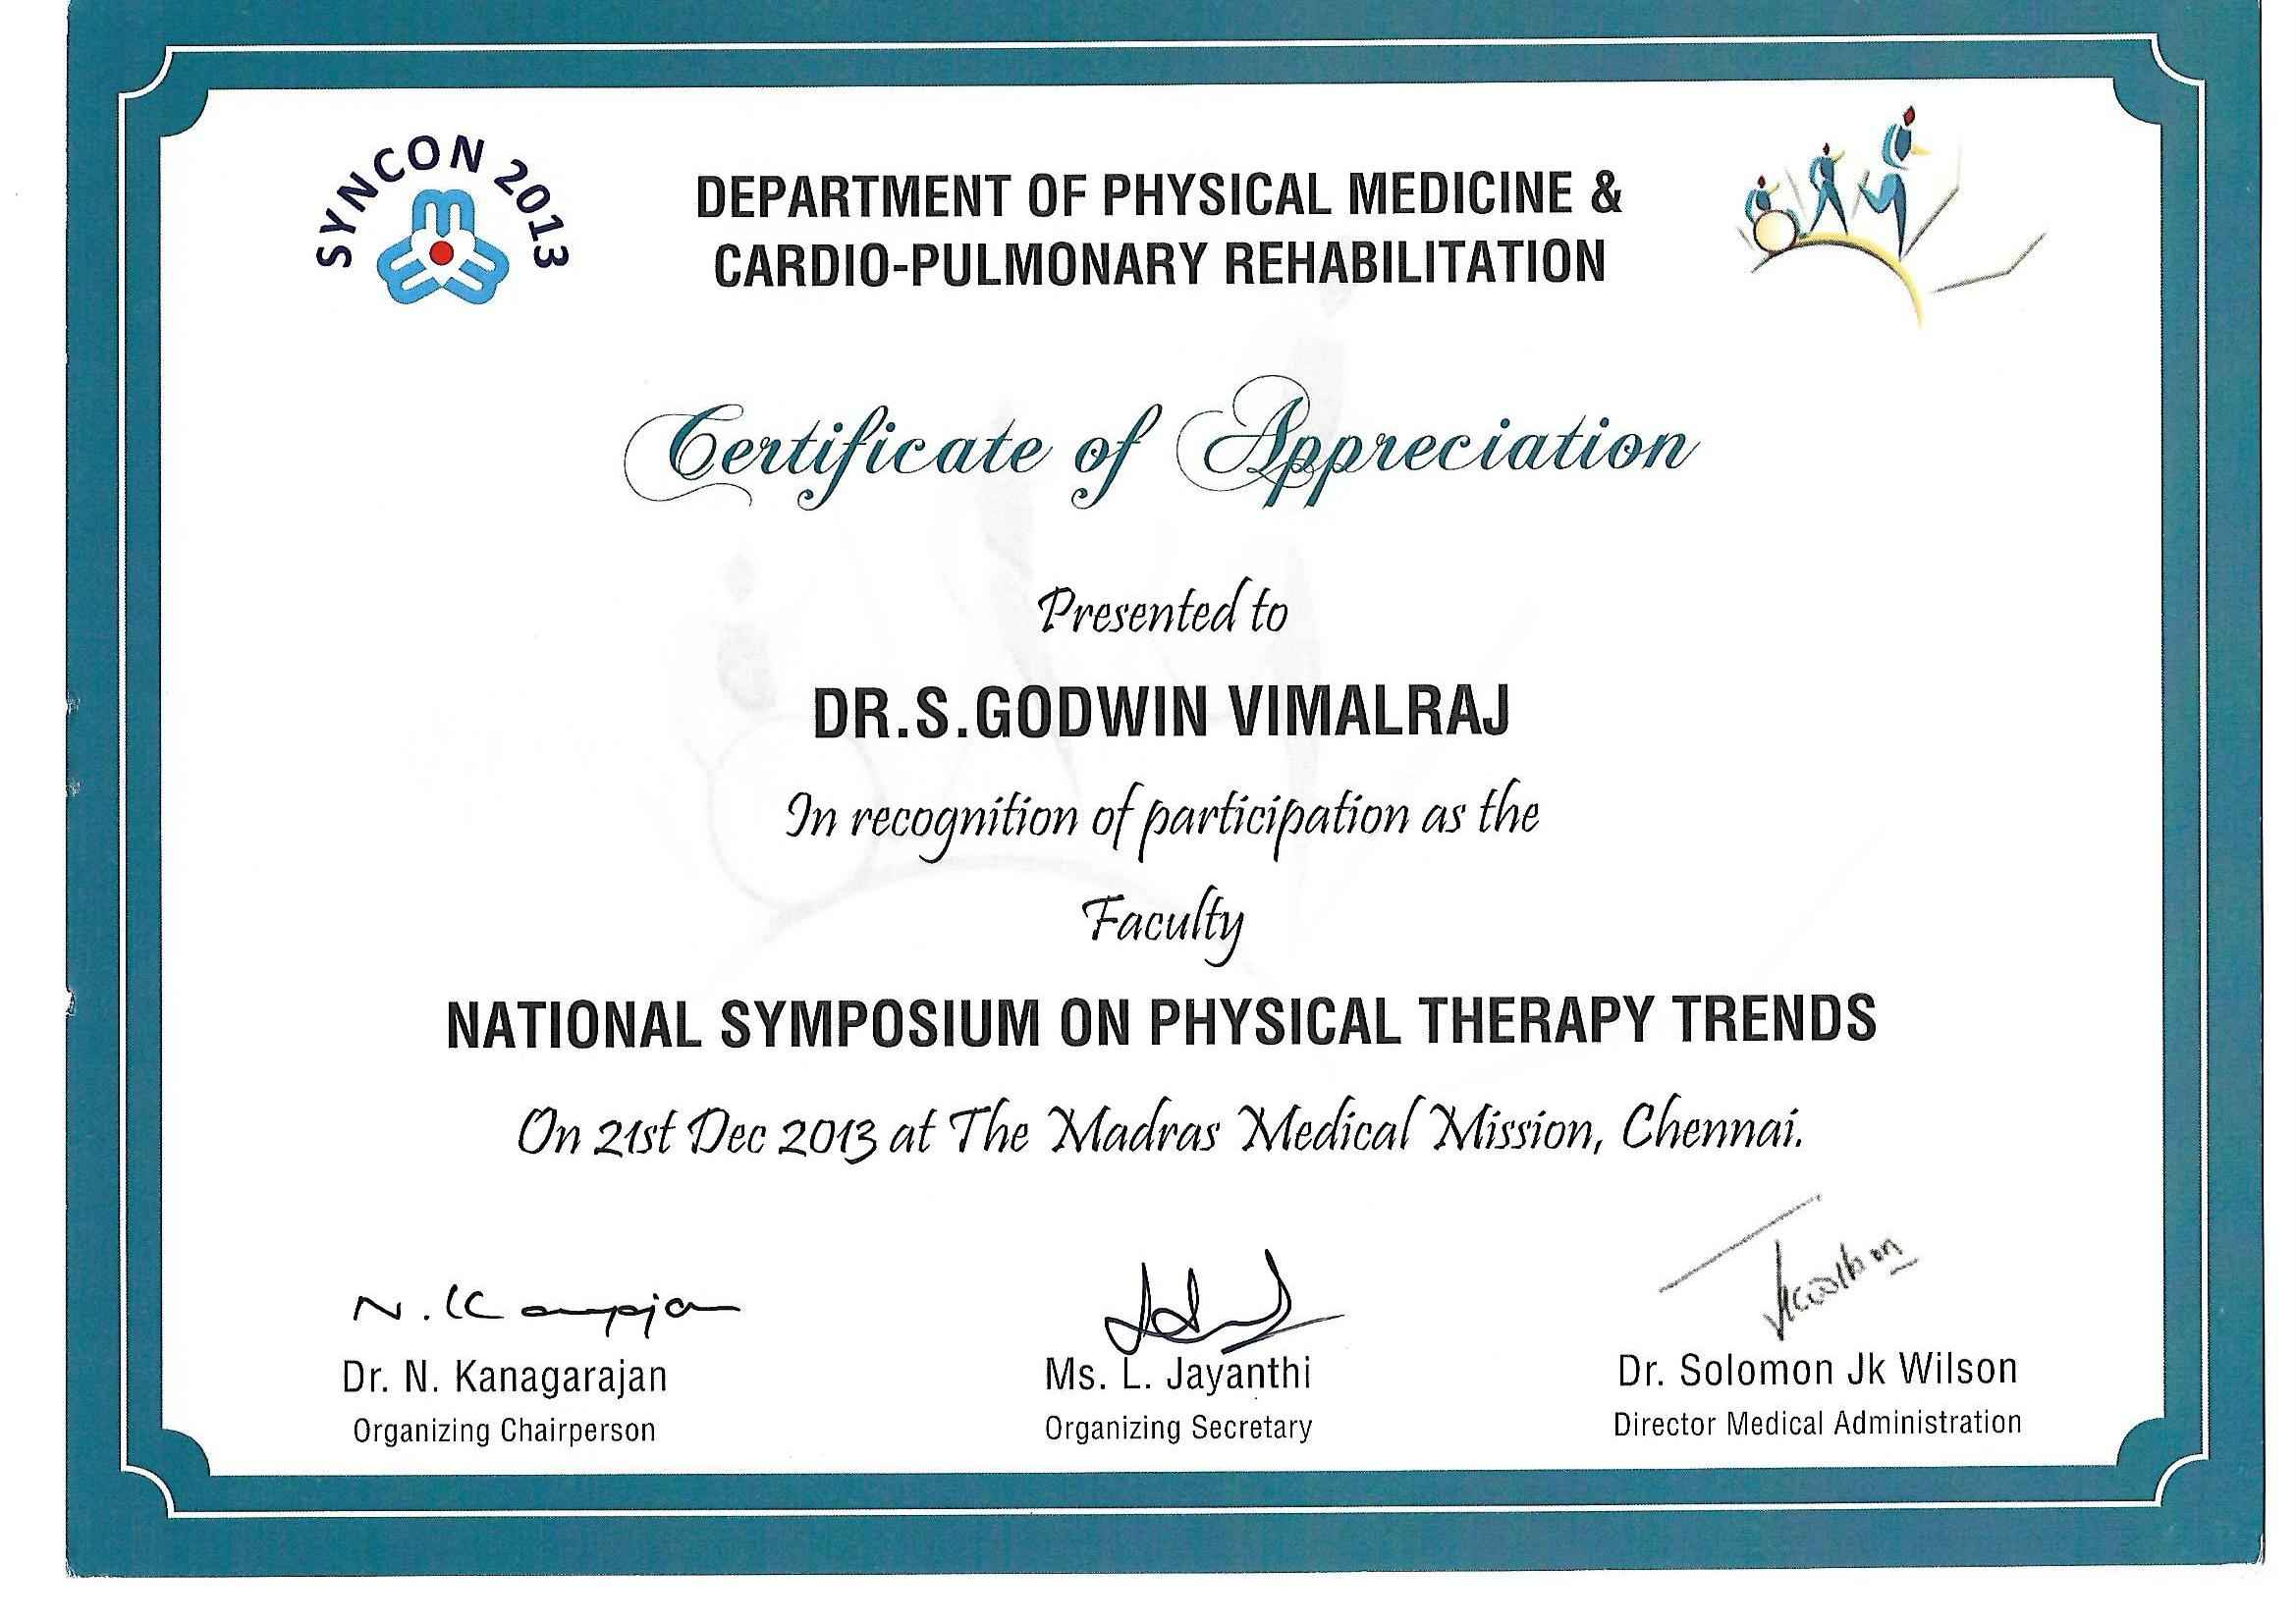 Godwin vimalraj stephen bayt certificate of appreciation faculty for organising national symposium on physical therapy trends certificate yadclub Image collections